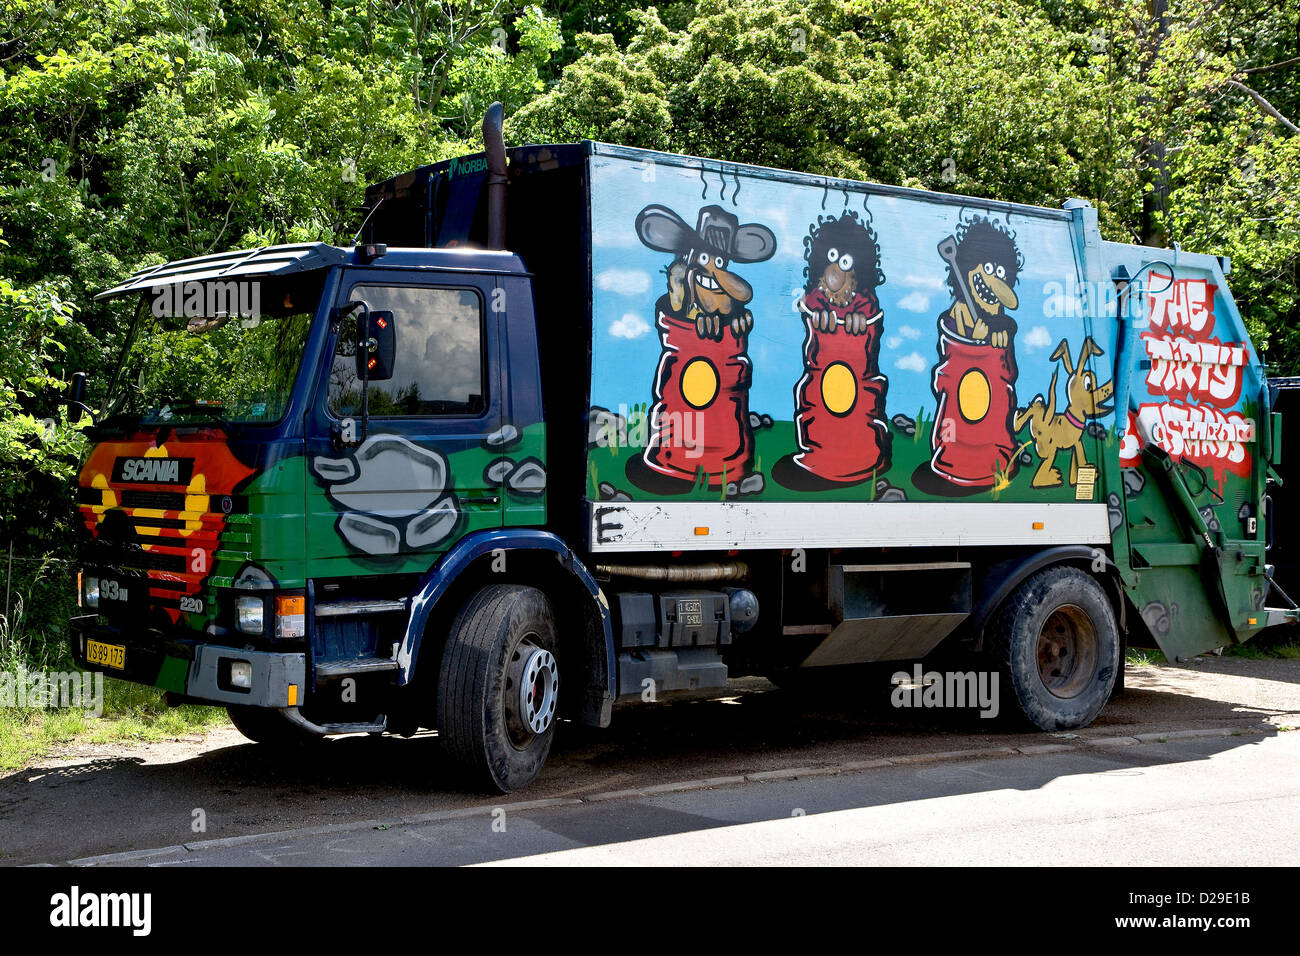 Garbage Truck Stock Photos Images Alamy Graffiti Painted Image